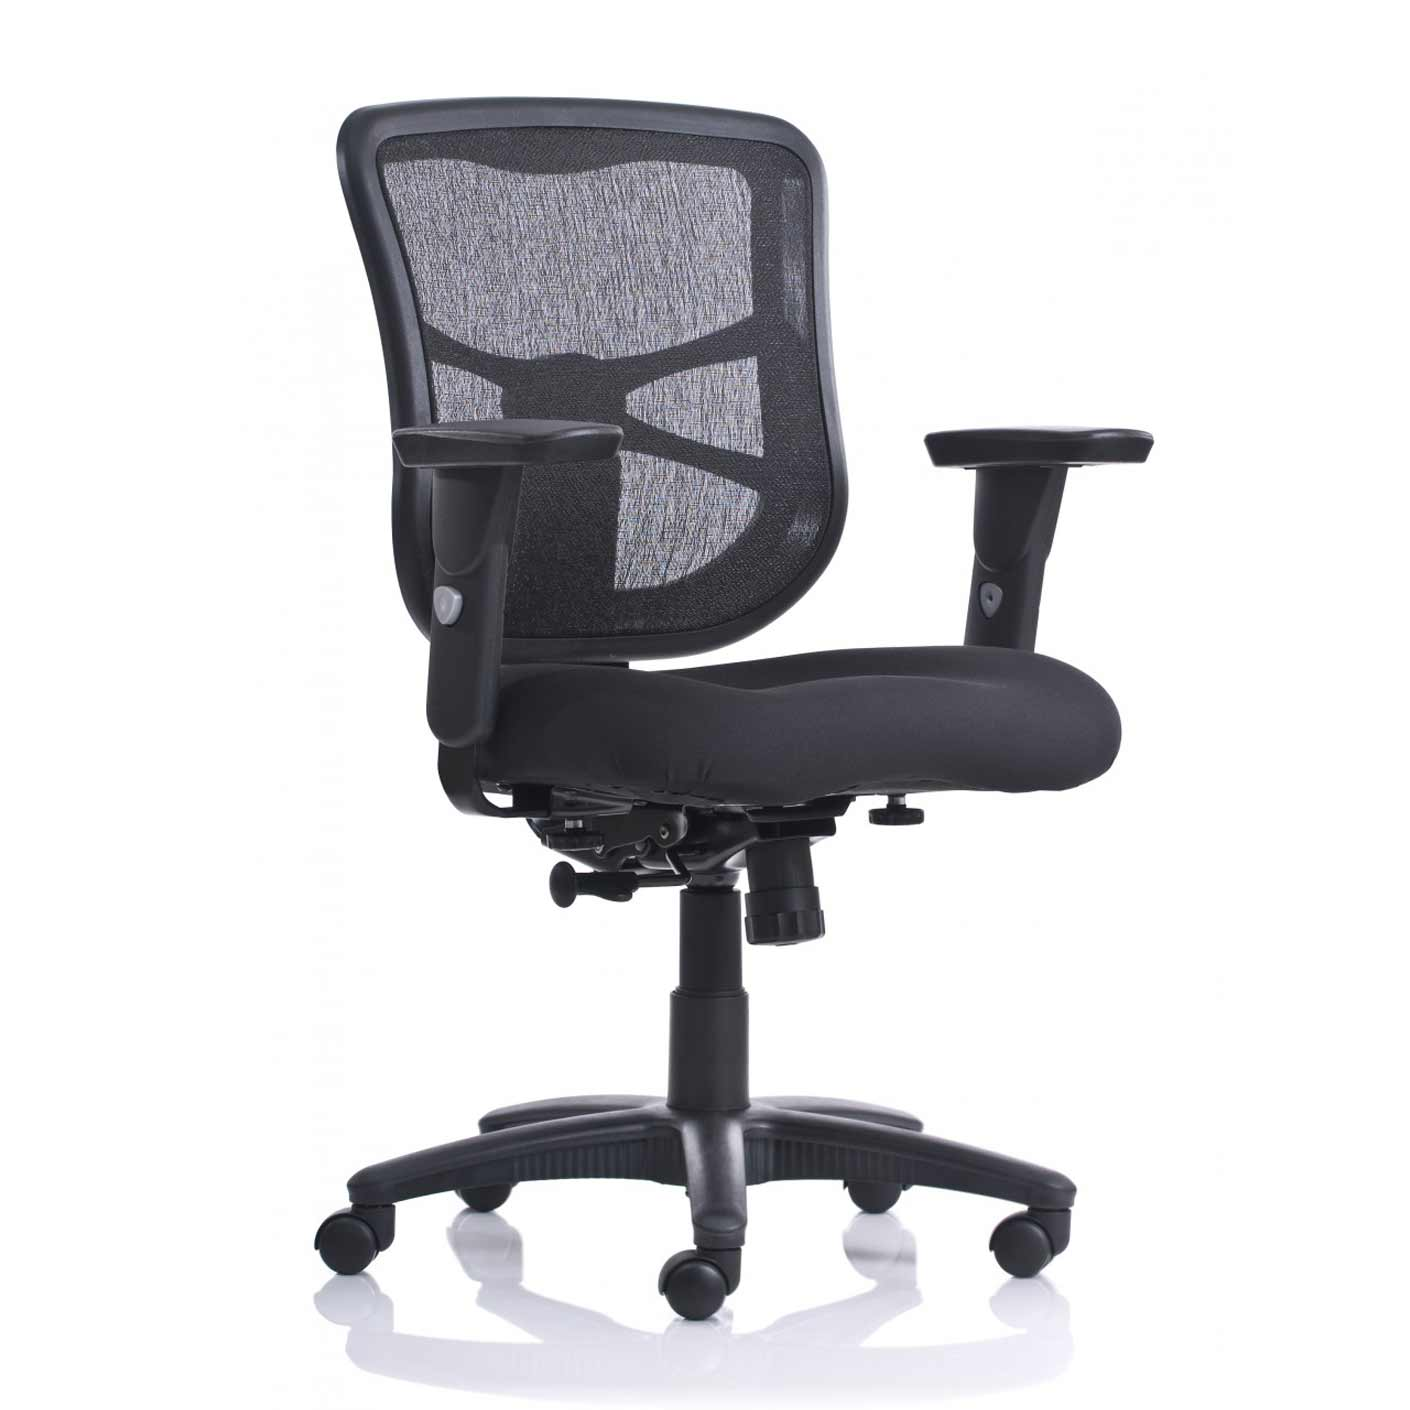 black mesh office chair peacock rattan chicago chairs for investment